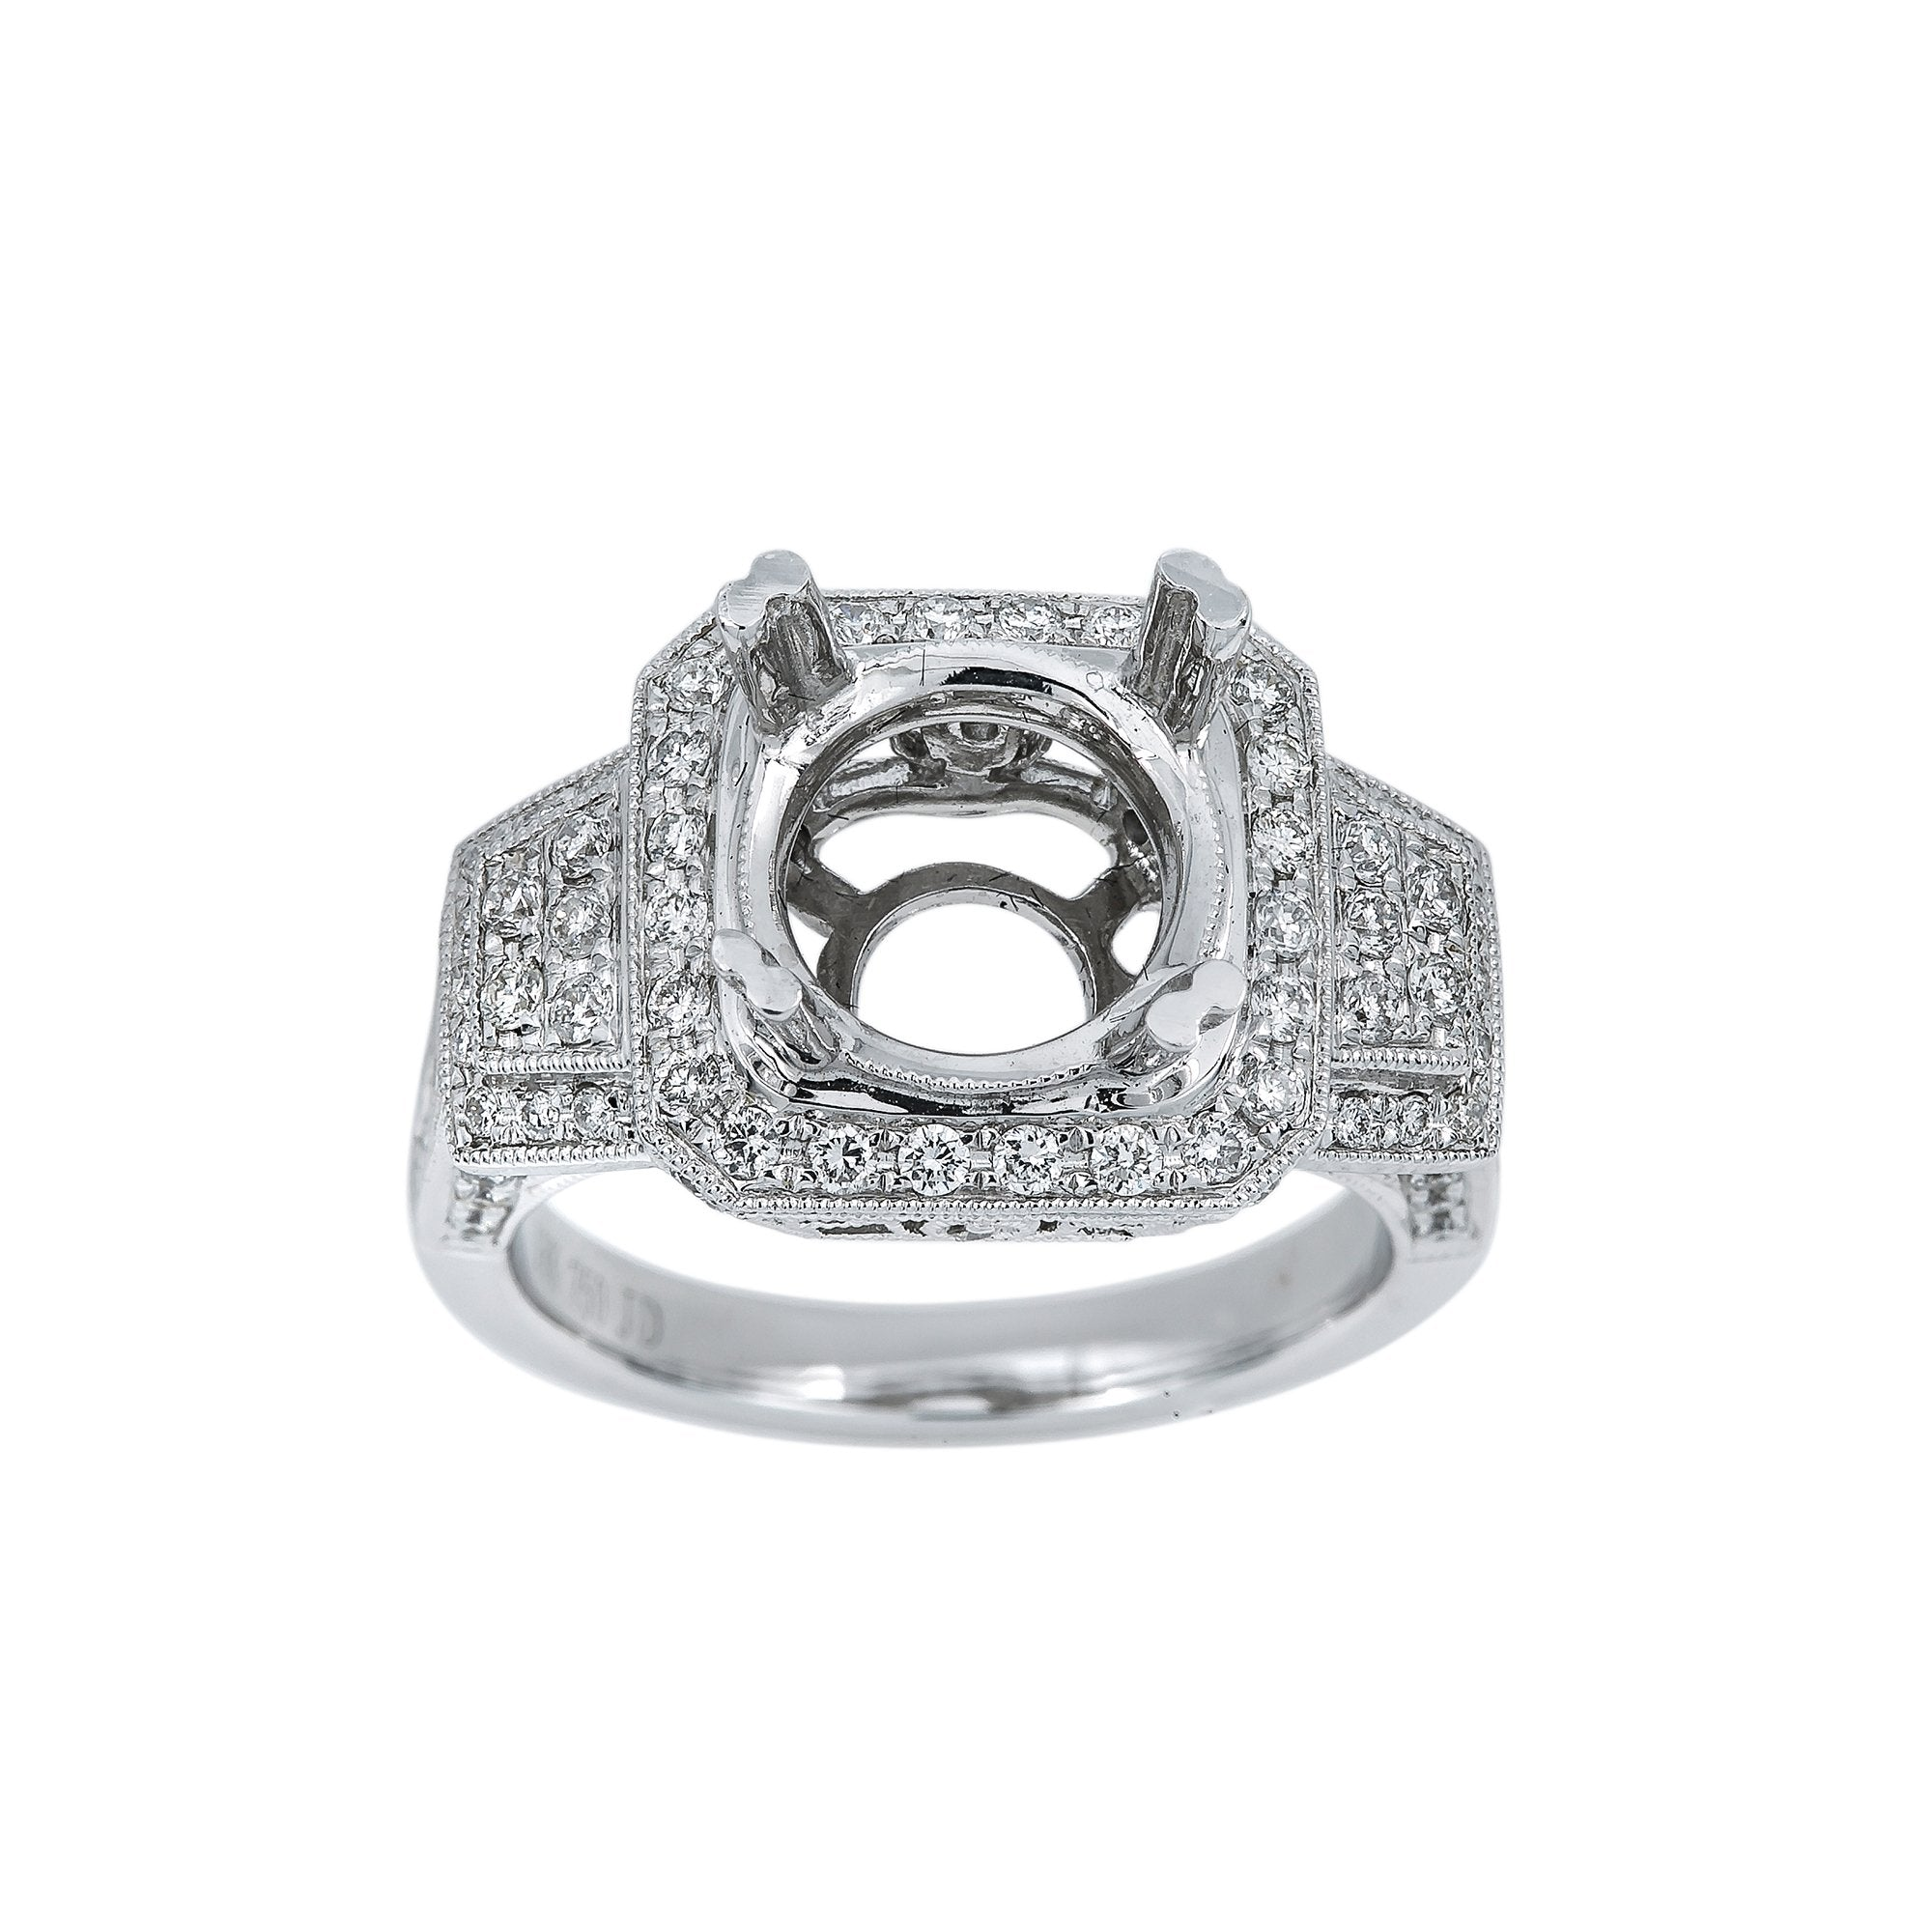 18K White Gold BJ6336R1 Women's Ring With 1.10 CT Diamonds